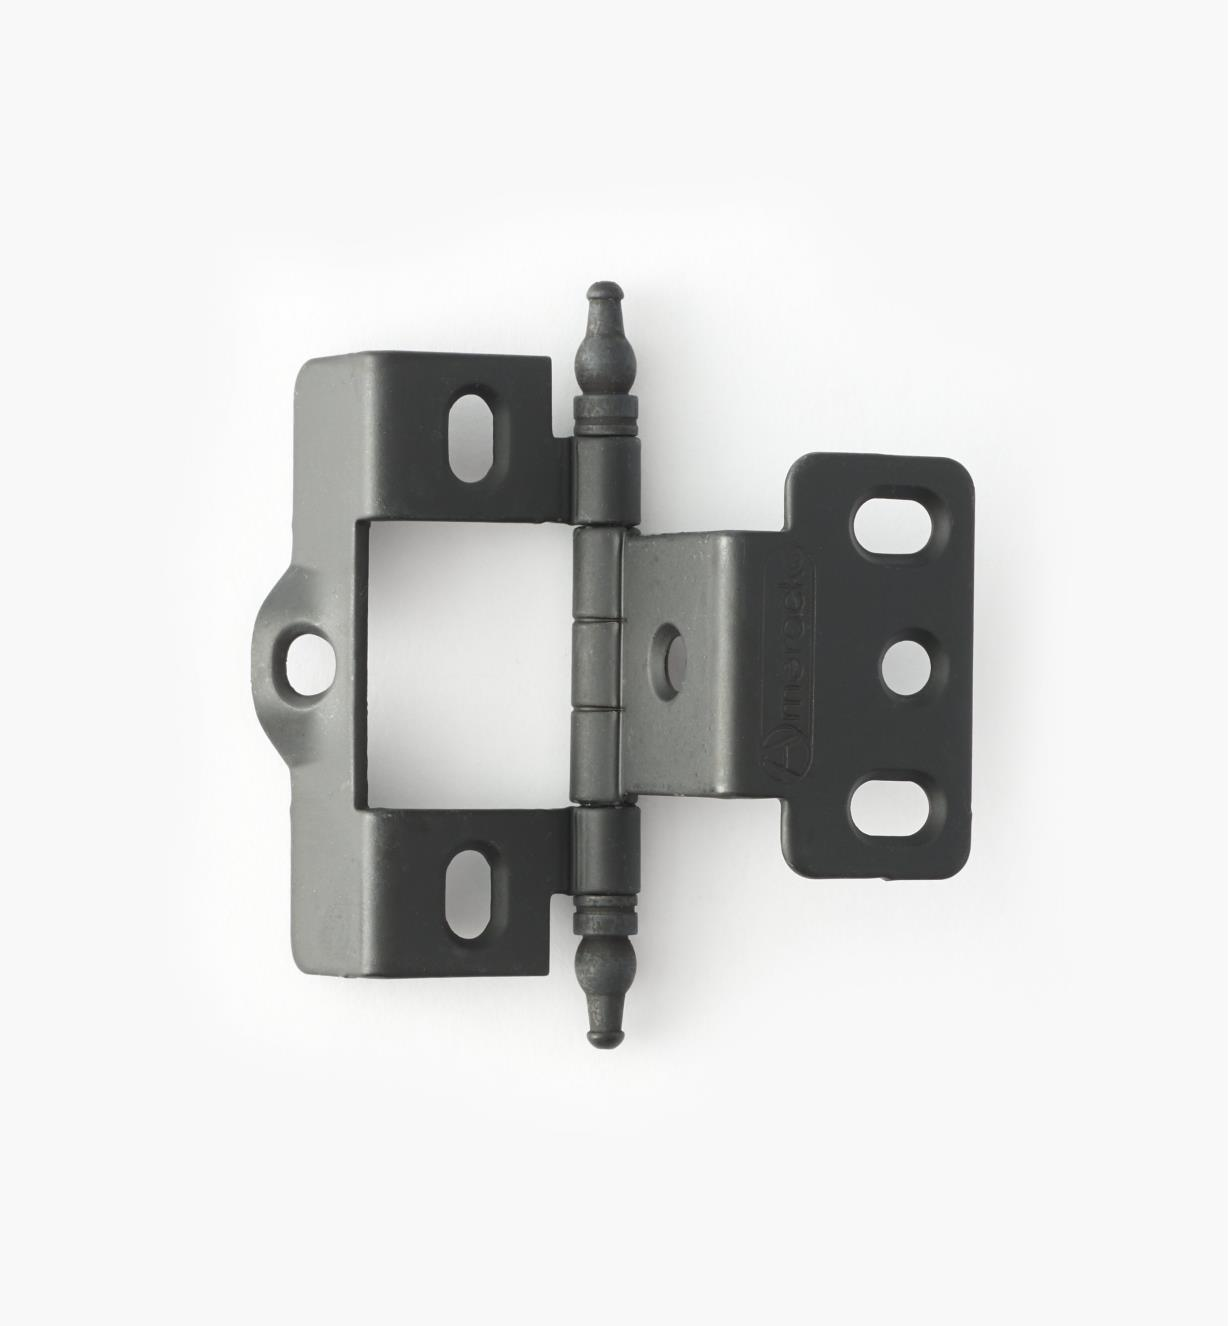 01H3060 - Full-Wrap Hinge,Black, Minaret